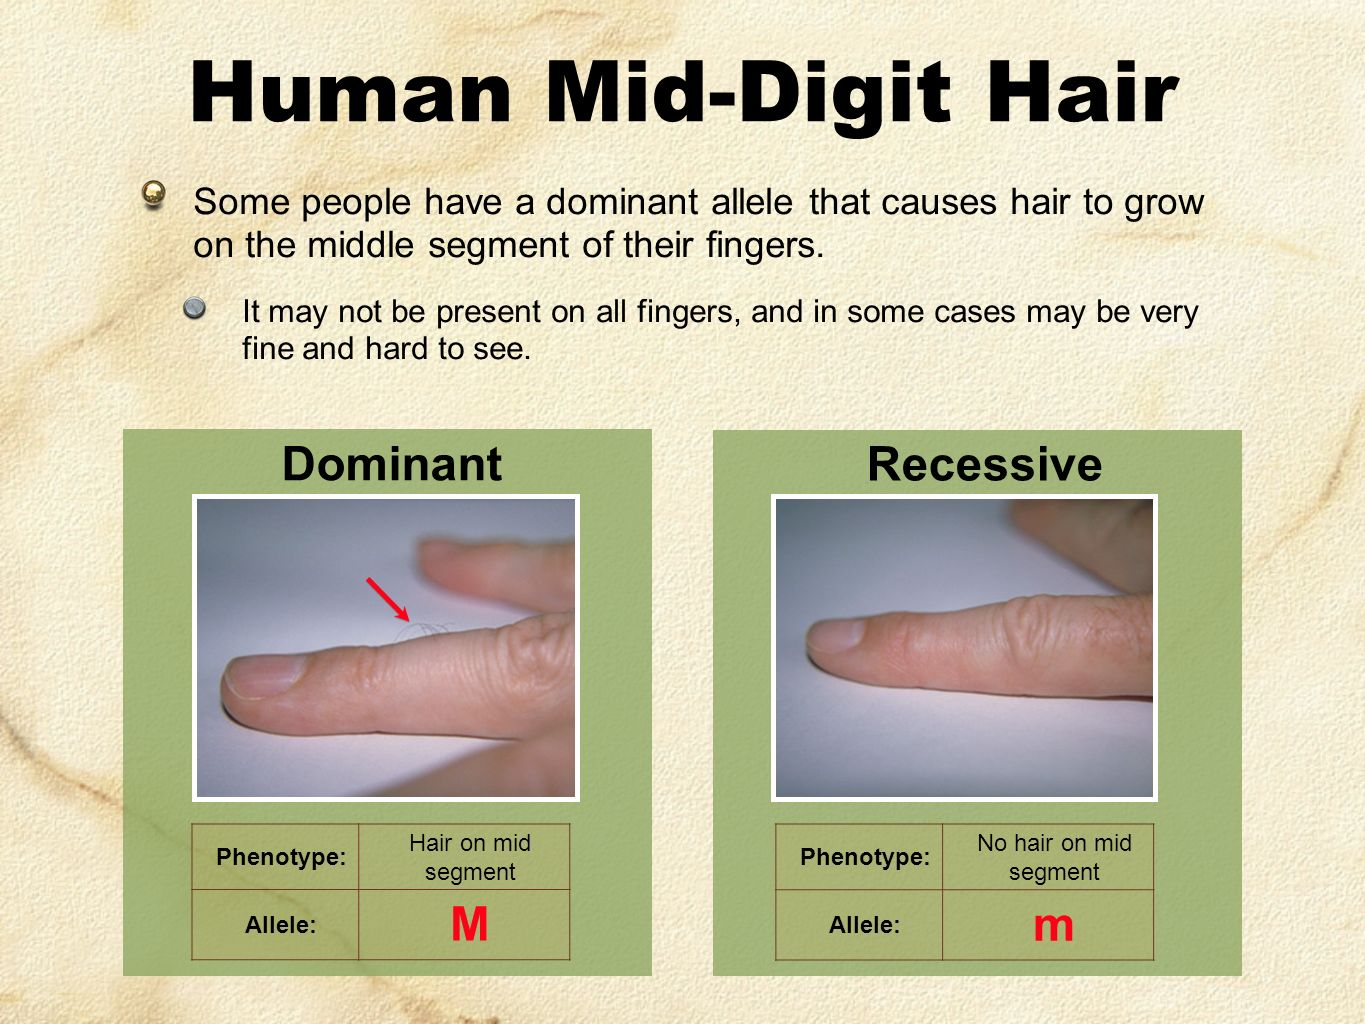 Recessive Phenotype: No hair on mid segment Allele: m Human Mid-Digit Hair Some people have a dominant allele that causes hair to grow on the middle segment of their fingers.